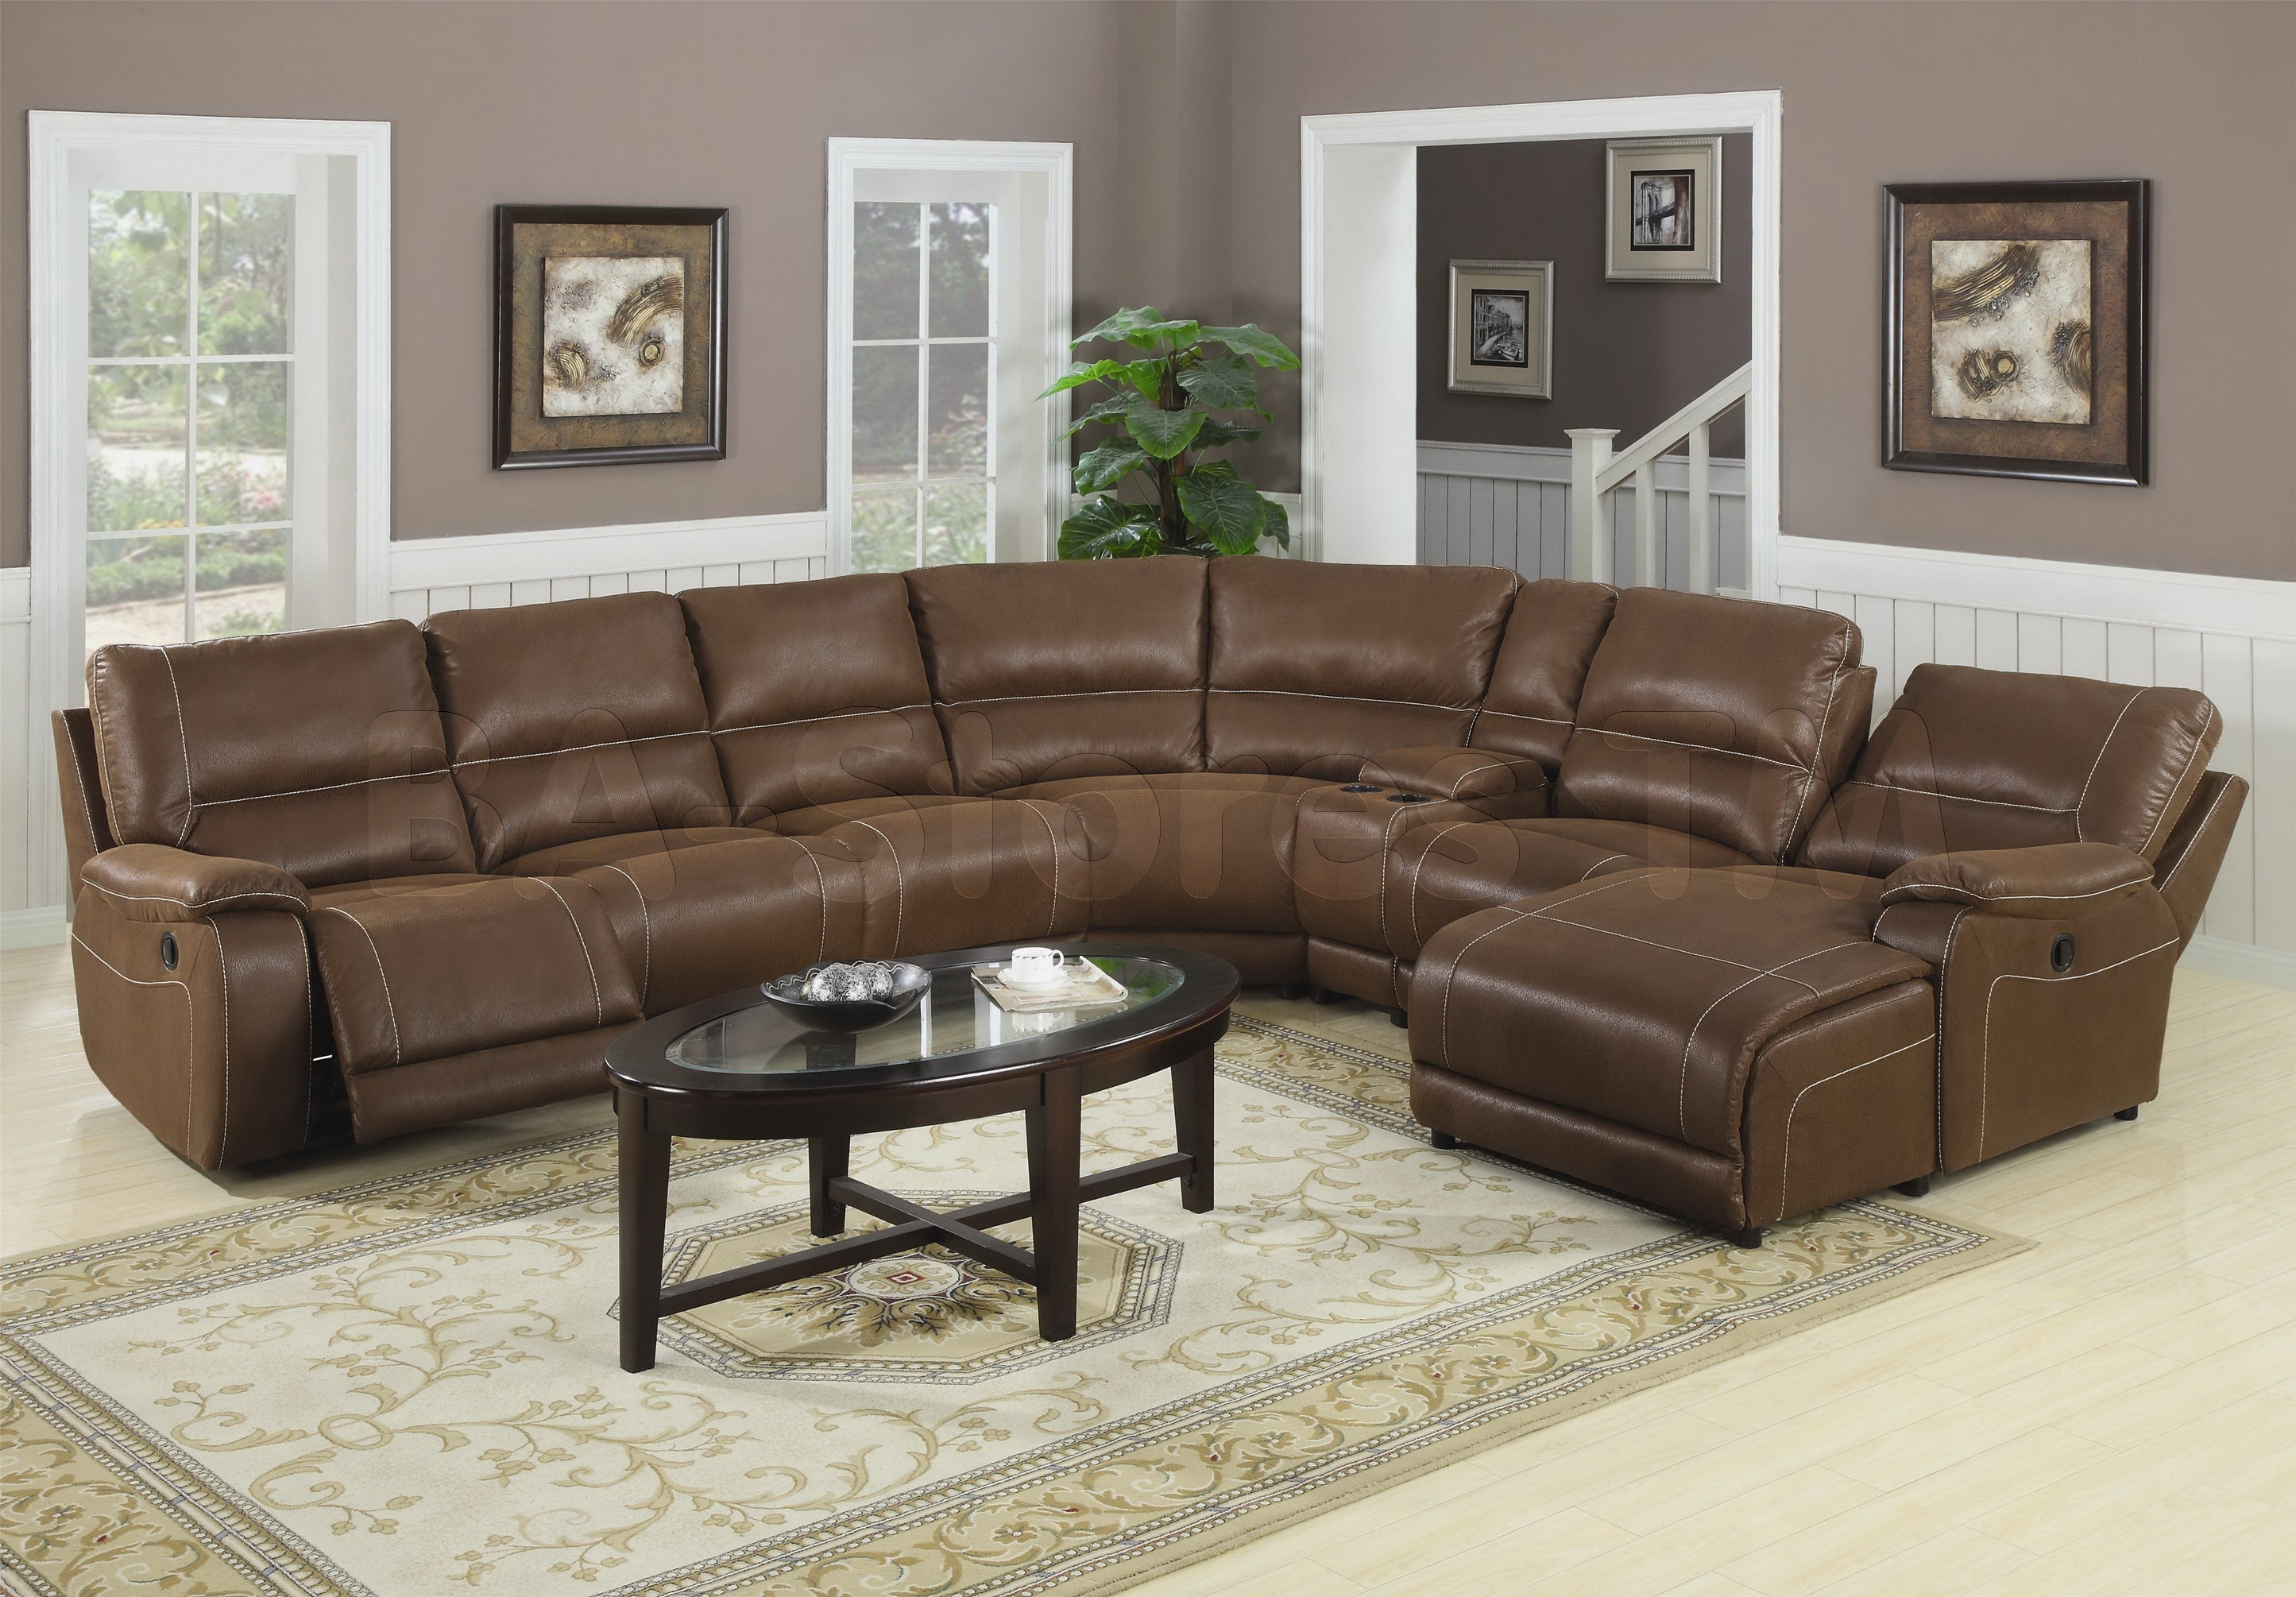 Sectional Sofa Design: Simple Large Sectional Sofa With Chaise Regarding Long Chaise Sofas (View 10 of 10)